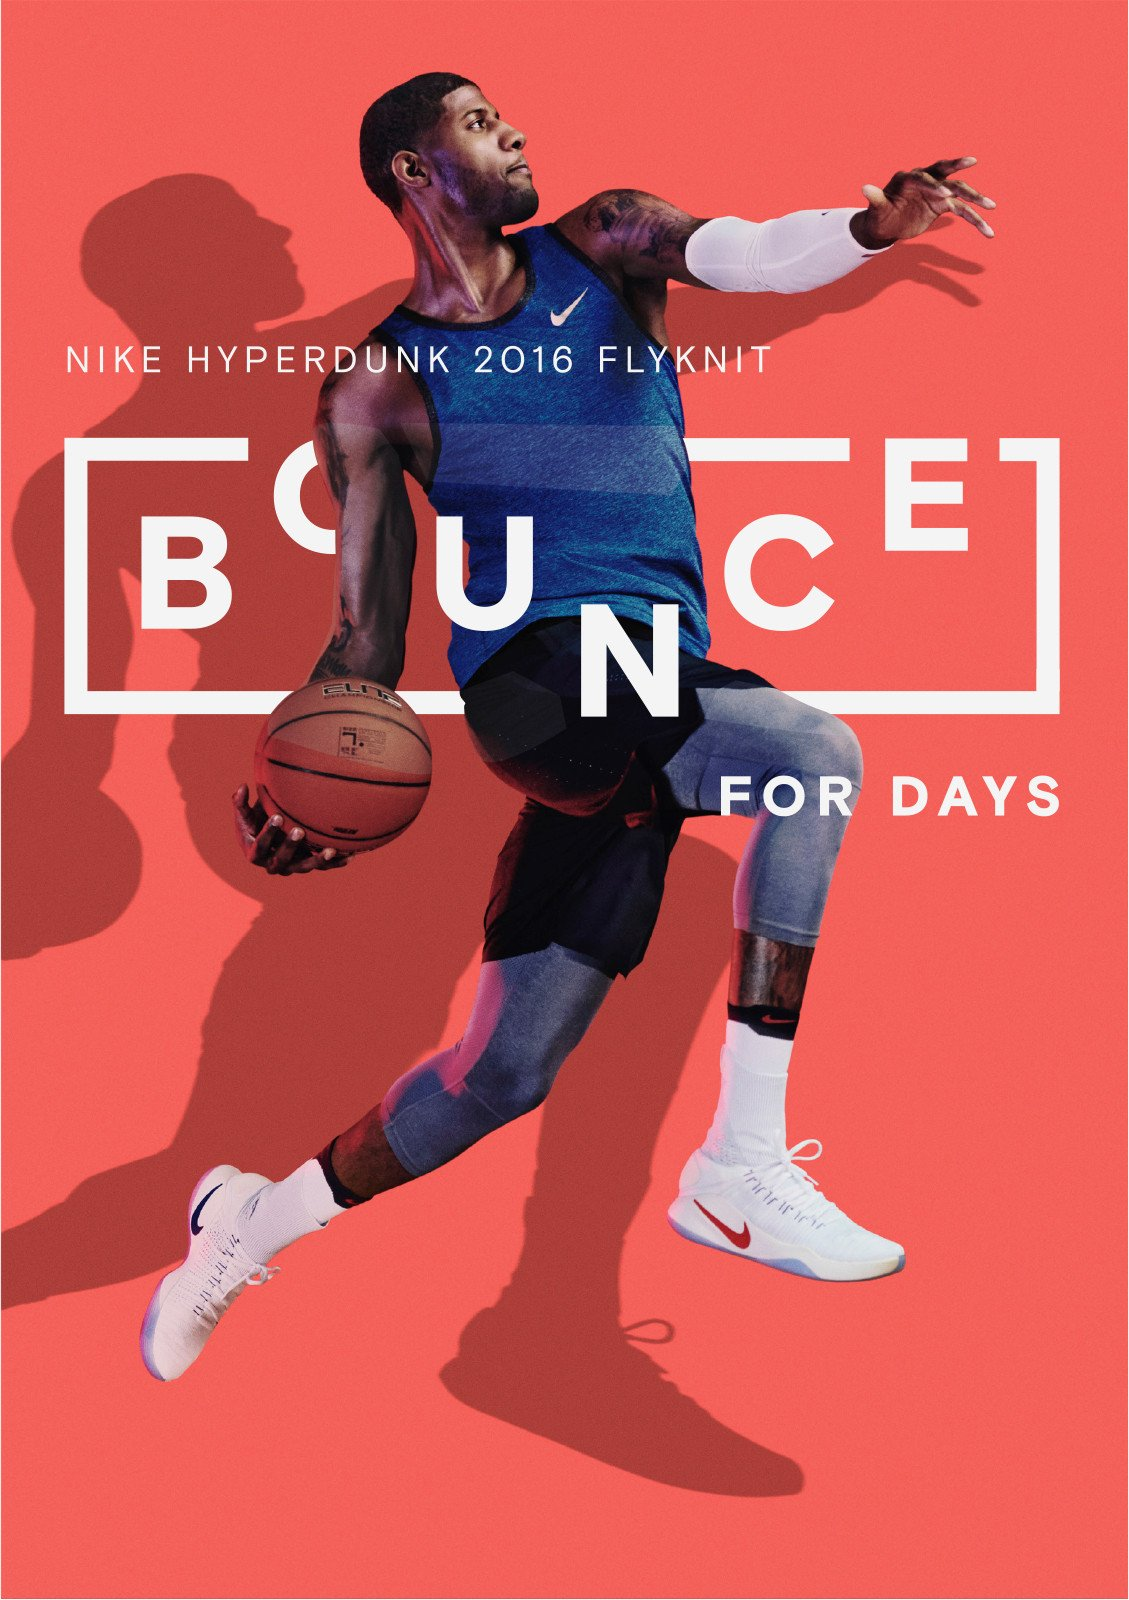 nike bounce for days product poster example